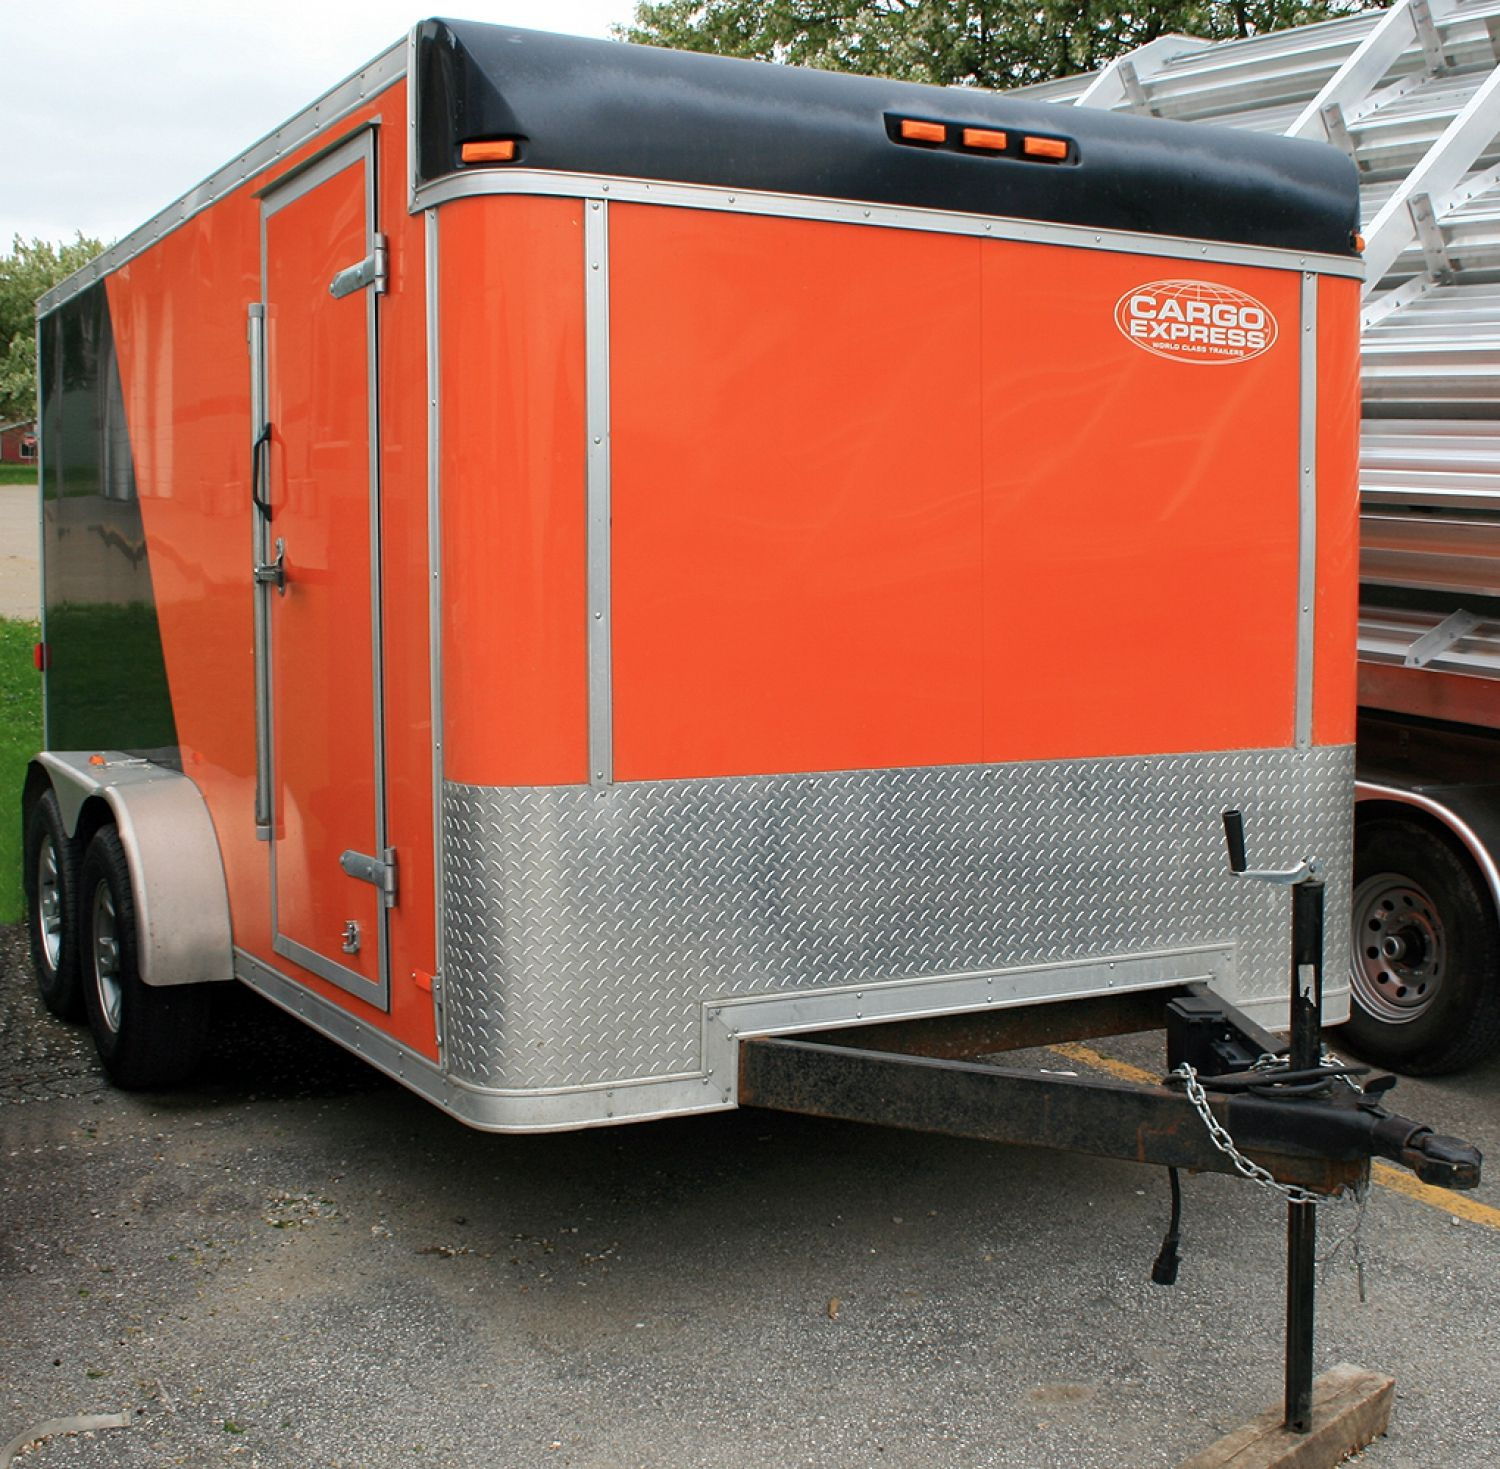 Pin By Neby On Digital Information Blog Pinterest Small Trailer